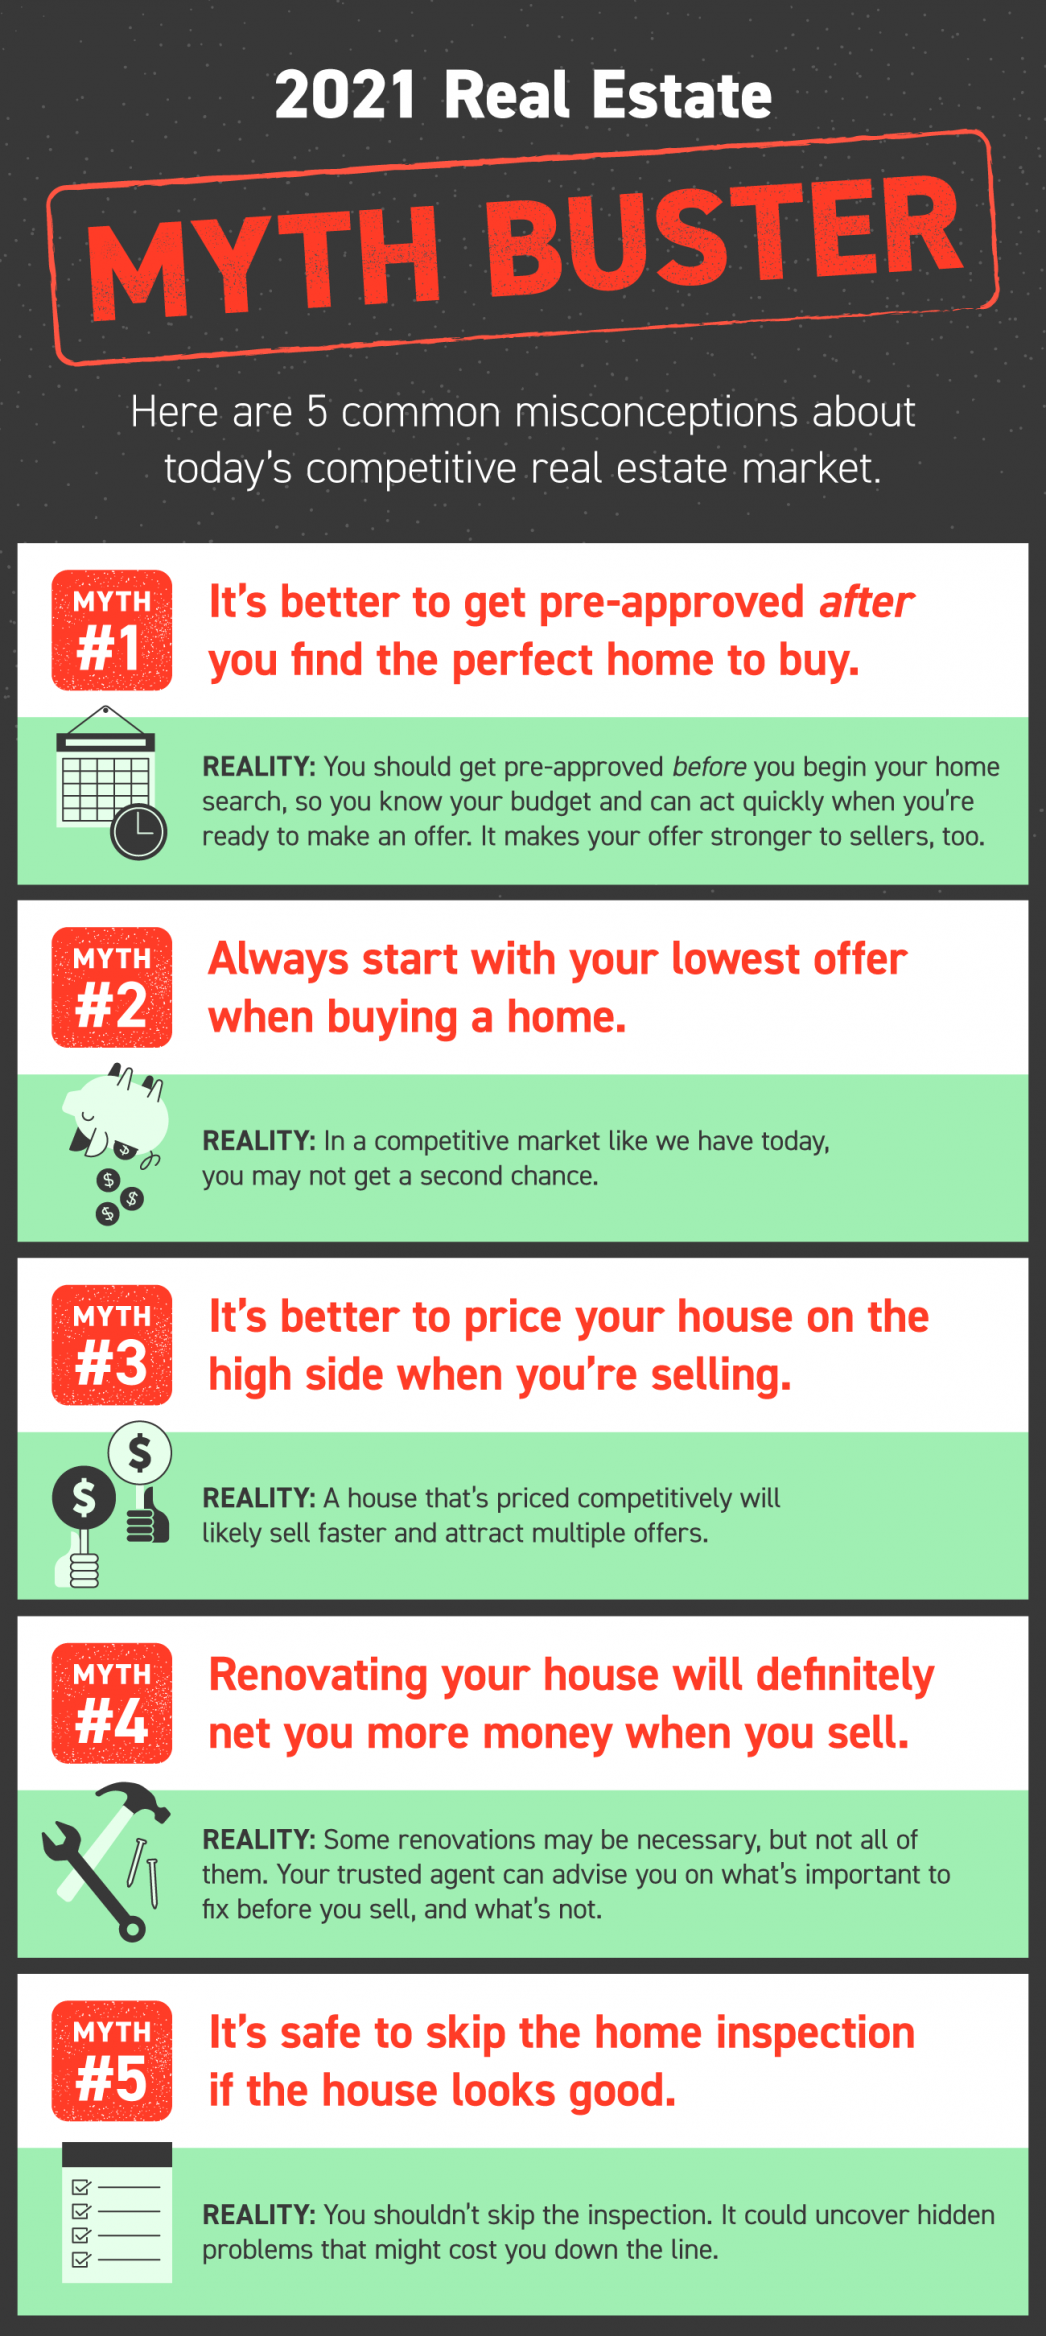 2021 Real Estate Myth Buster [INFOGRAPHIC] | MyKCM